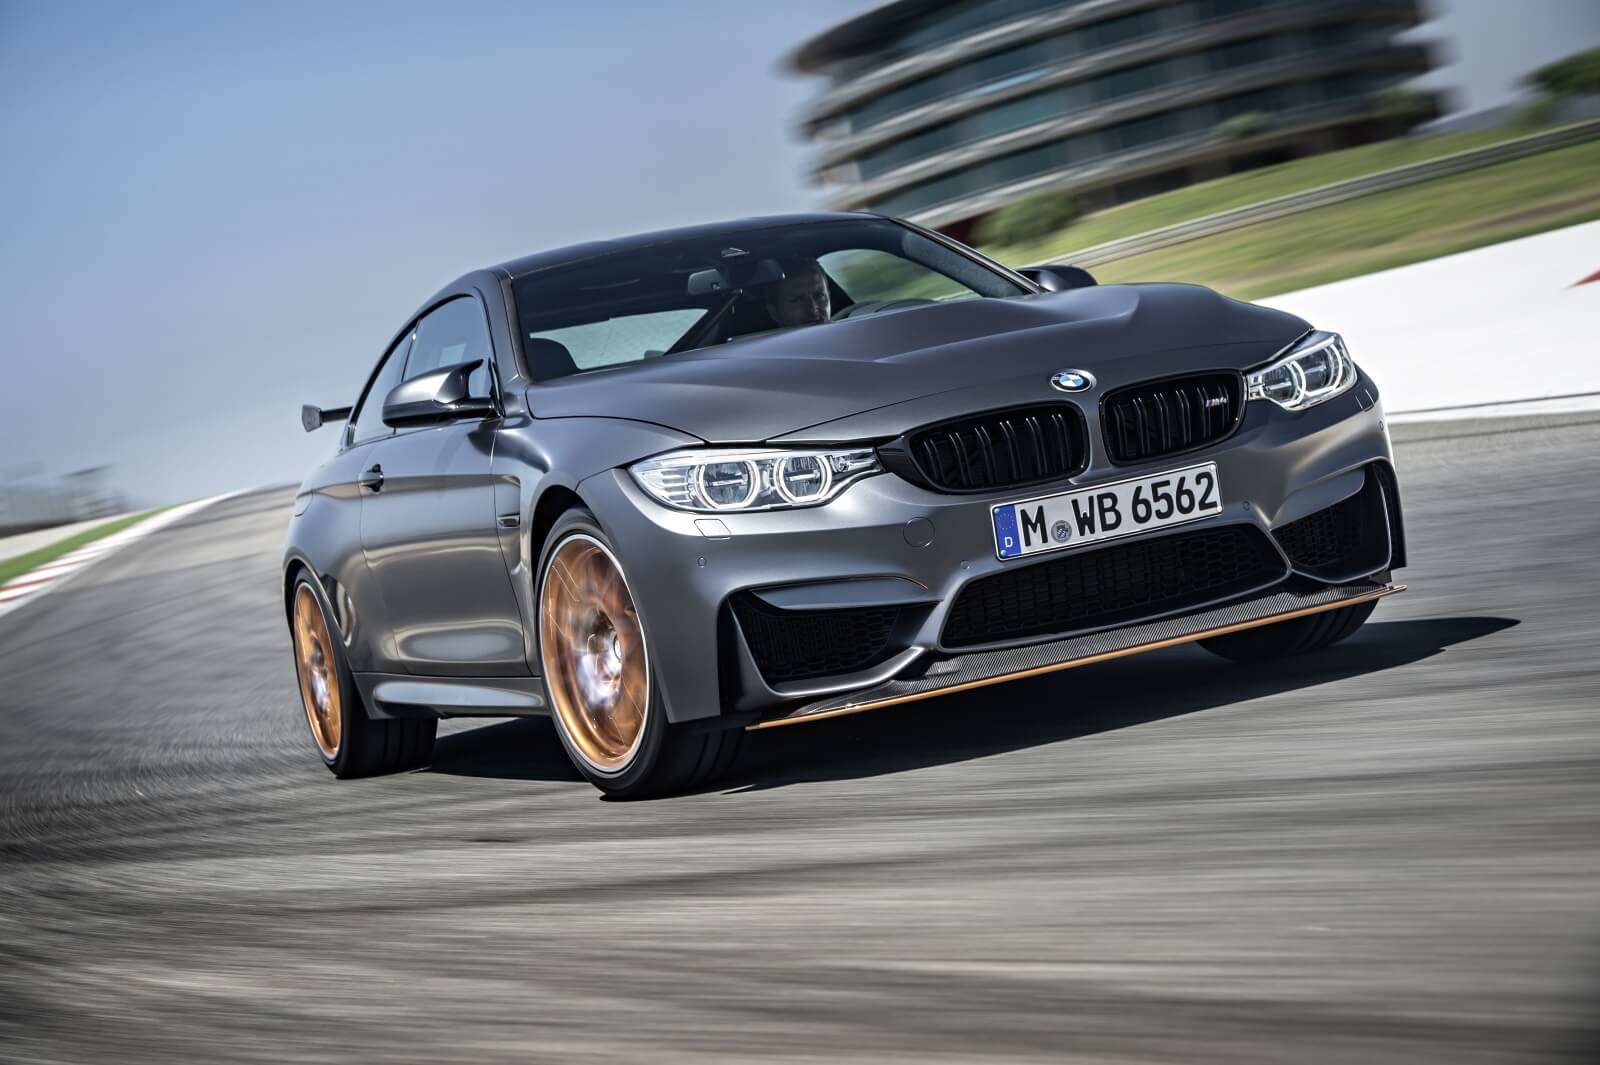 bmw-m4-gts-officially-unveiled-with-500-hp-and-a-728-nurburgring-lap-time-photo-gallery_2